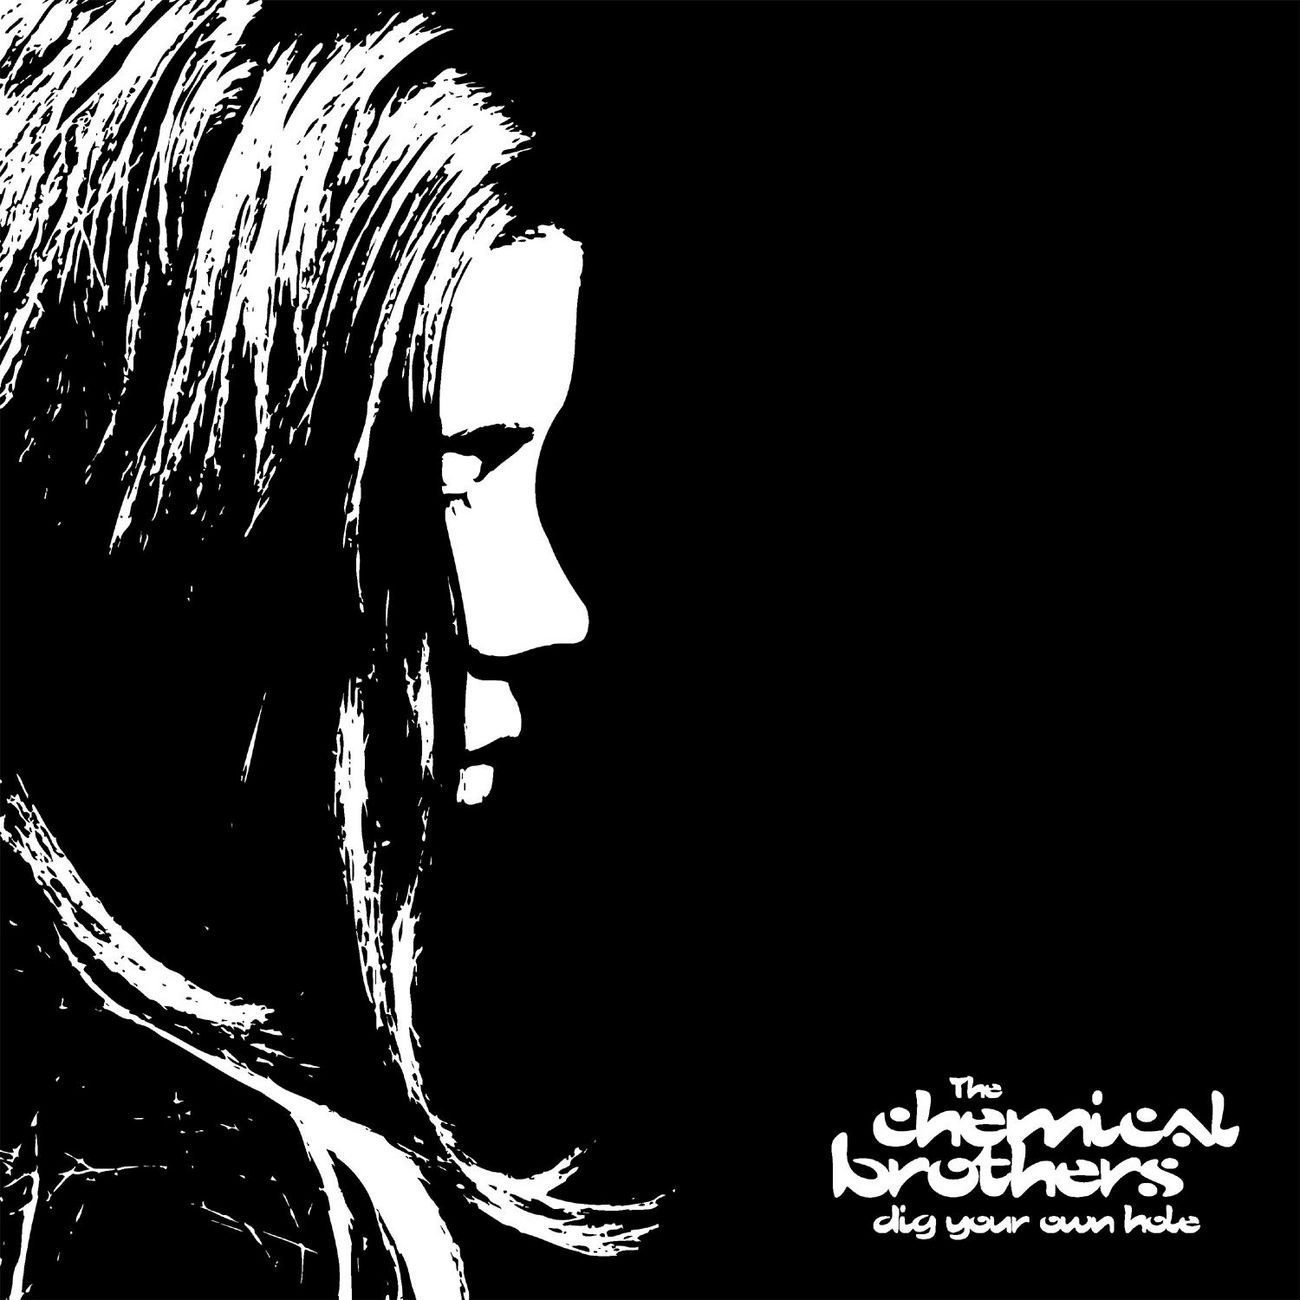 the-chemical-brothers-dig-your-own-hole-1491583416